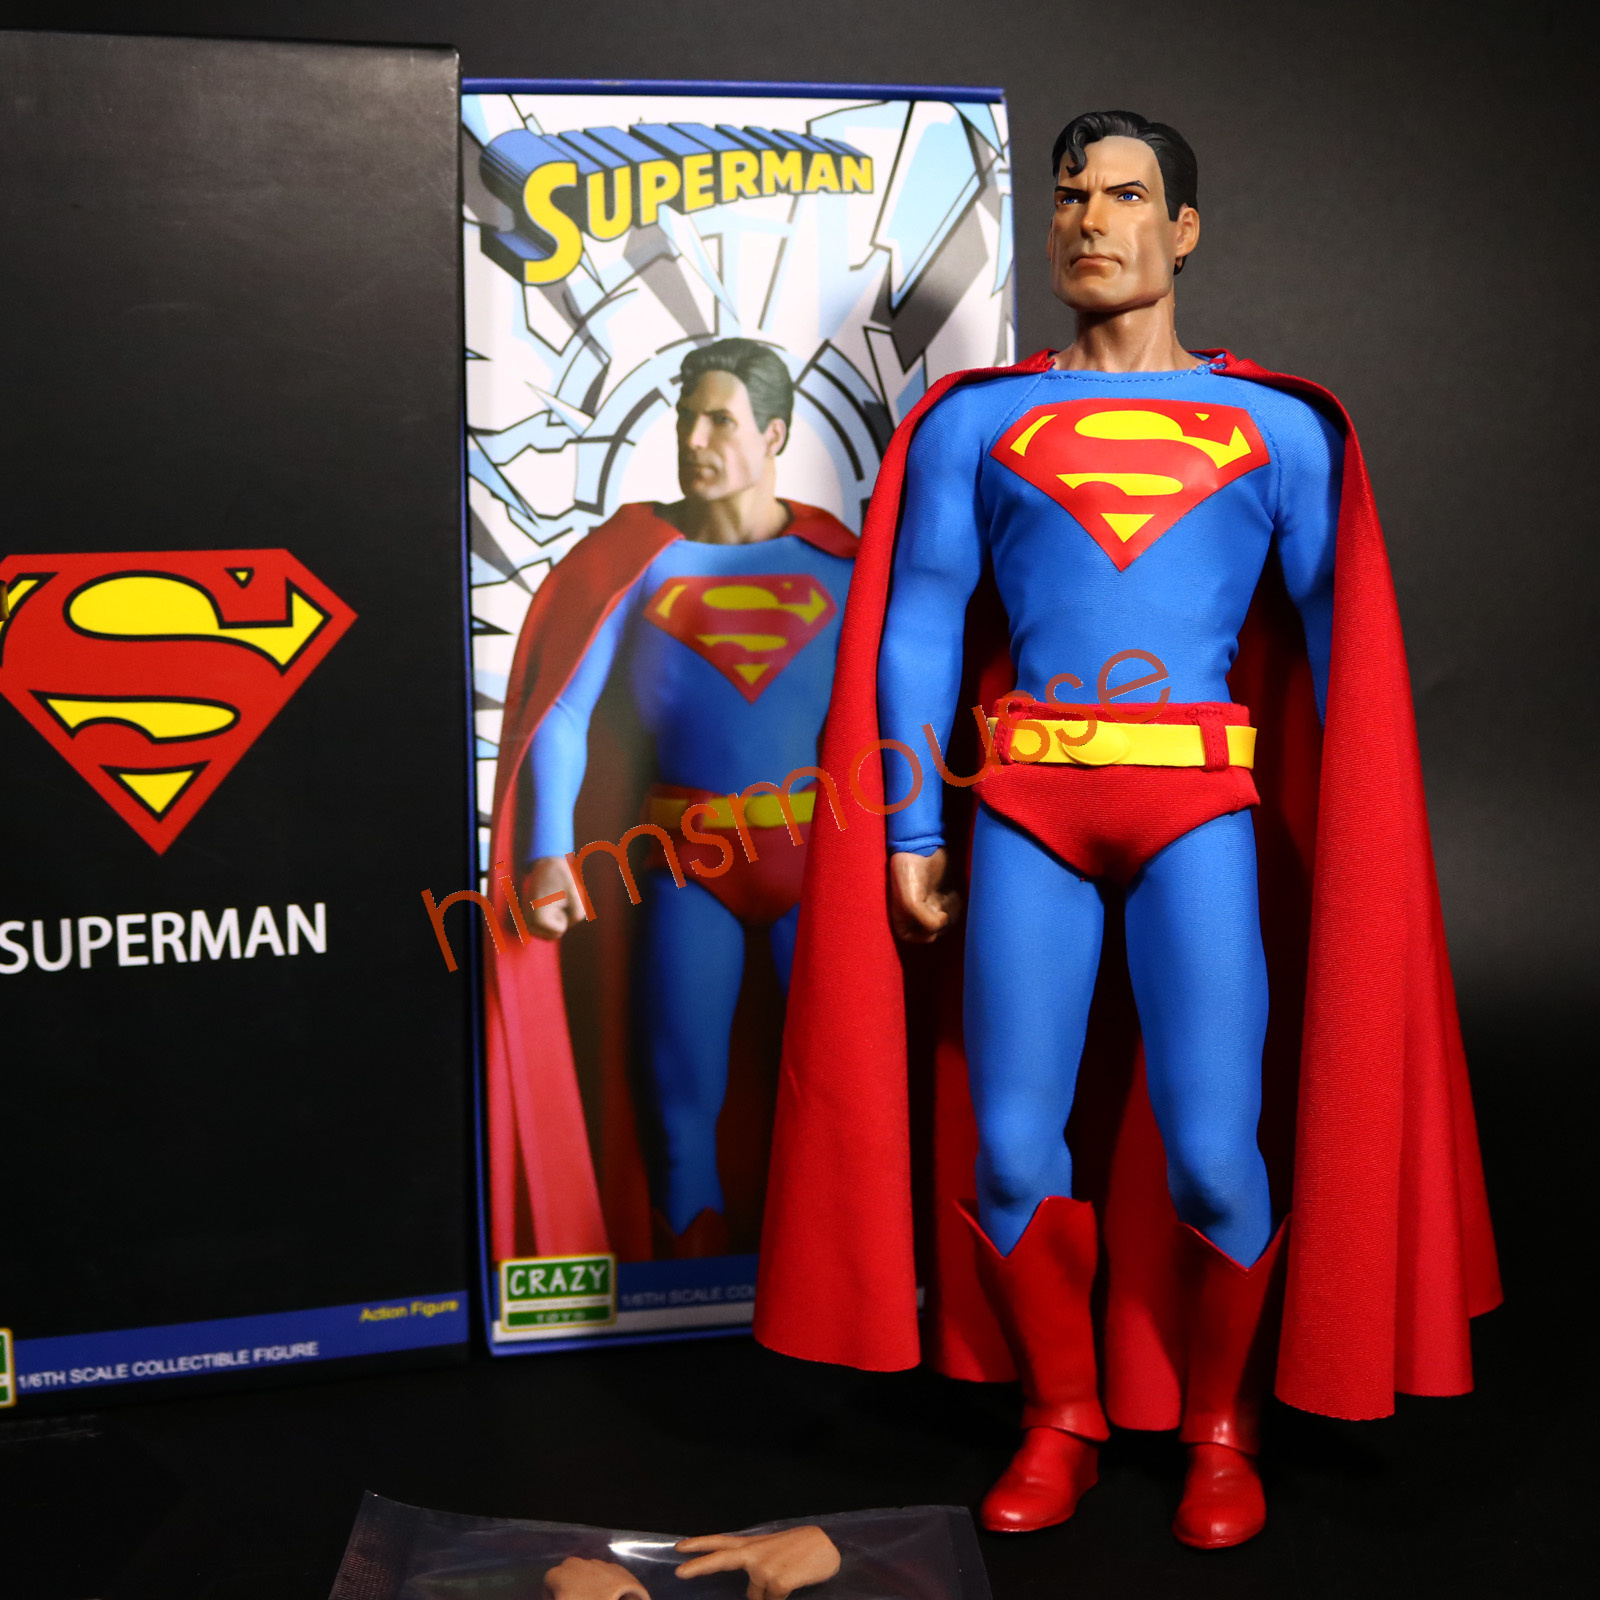 Best Superman Toys And Action Figures For Kids : Dc comic classic movie superman quot action figure